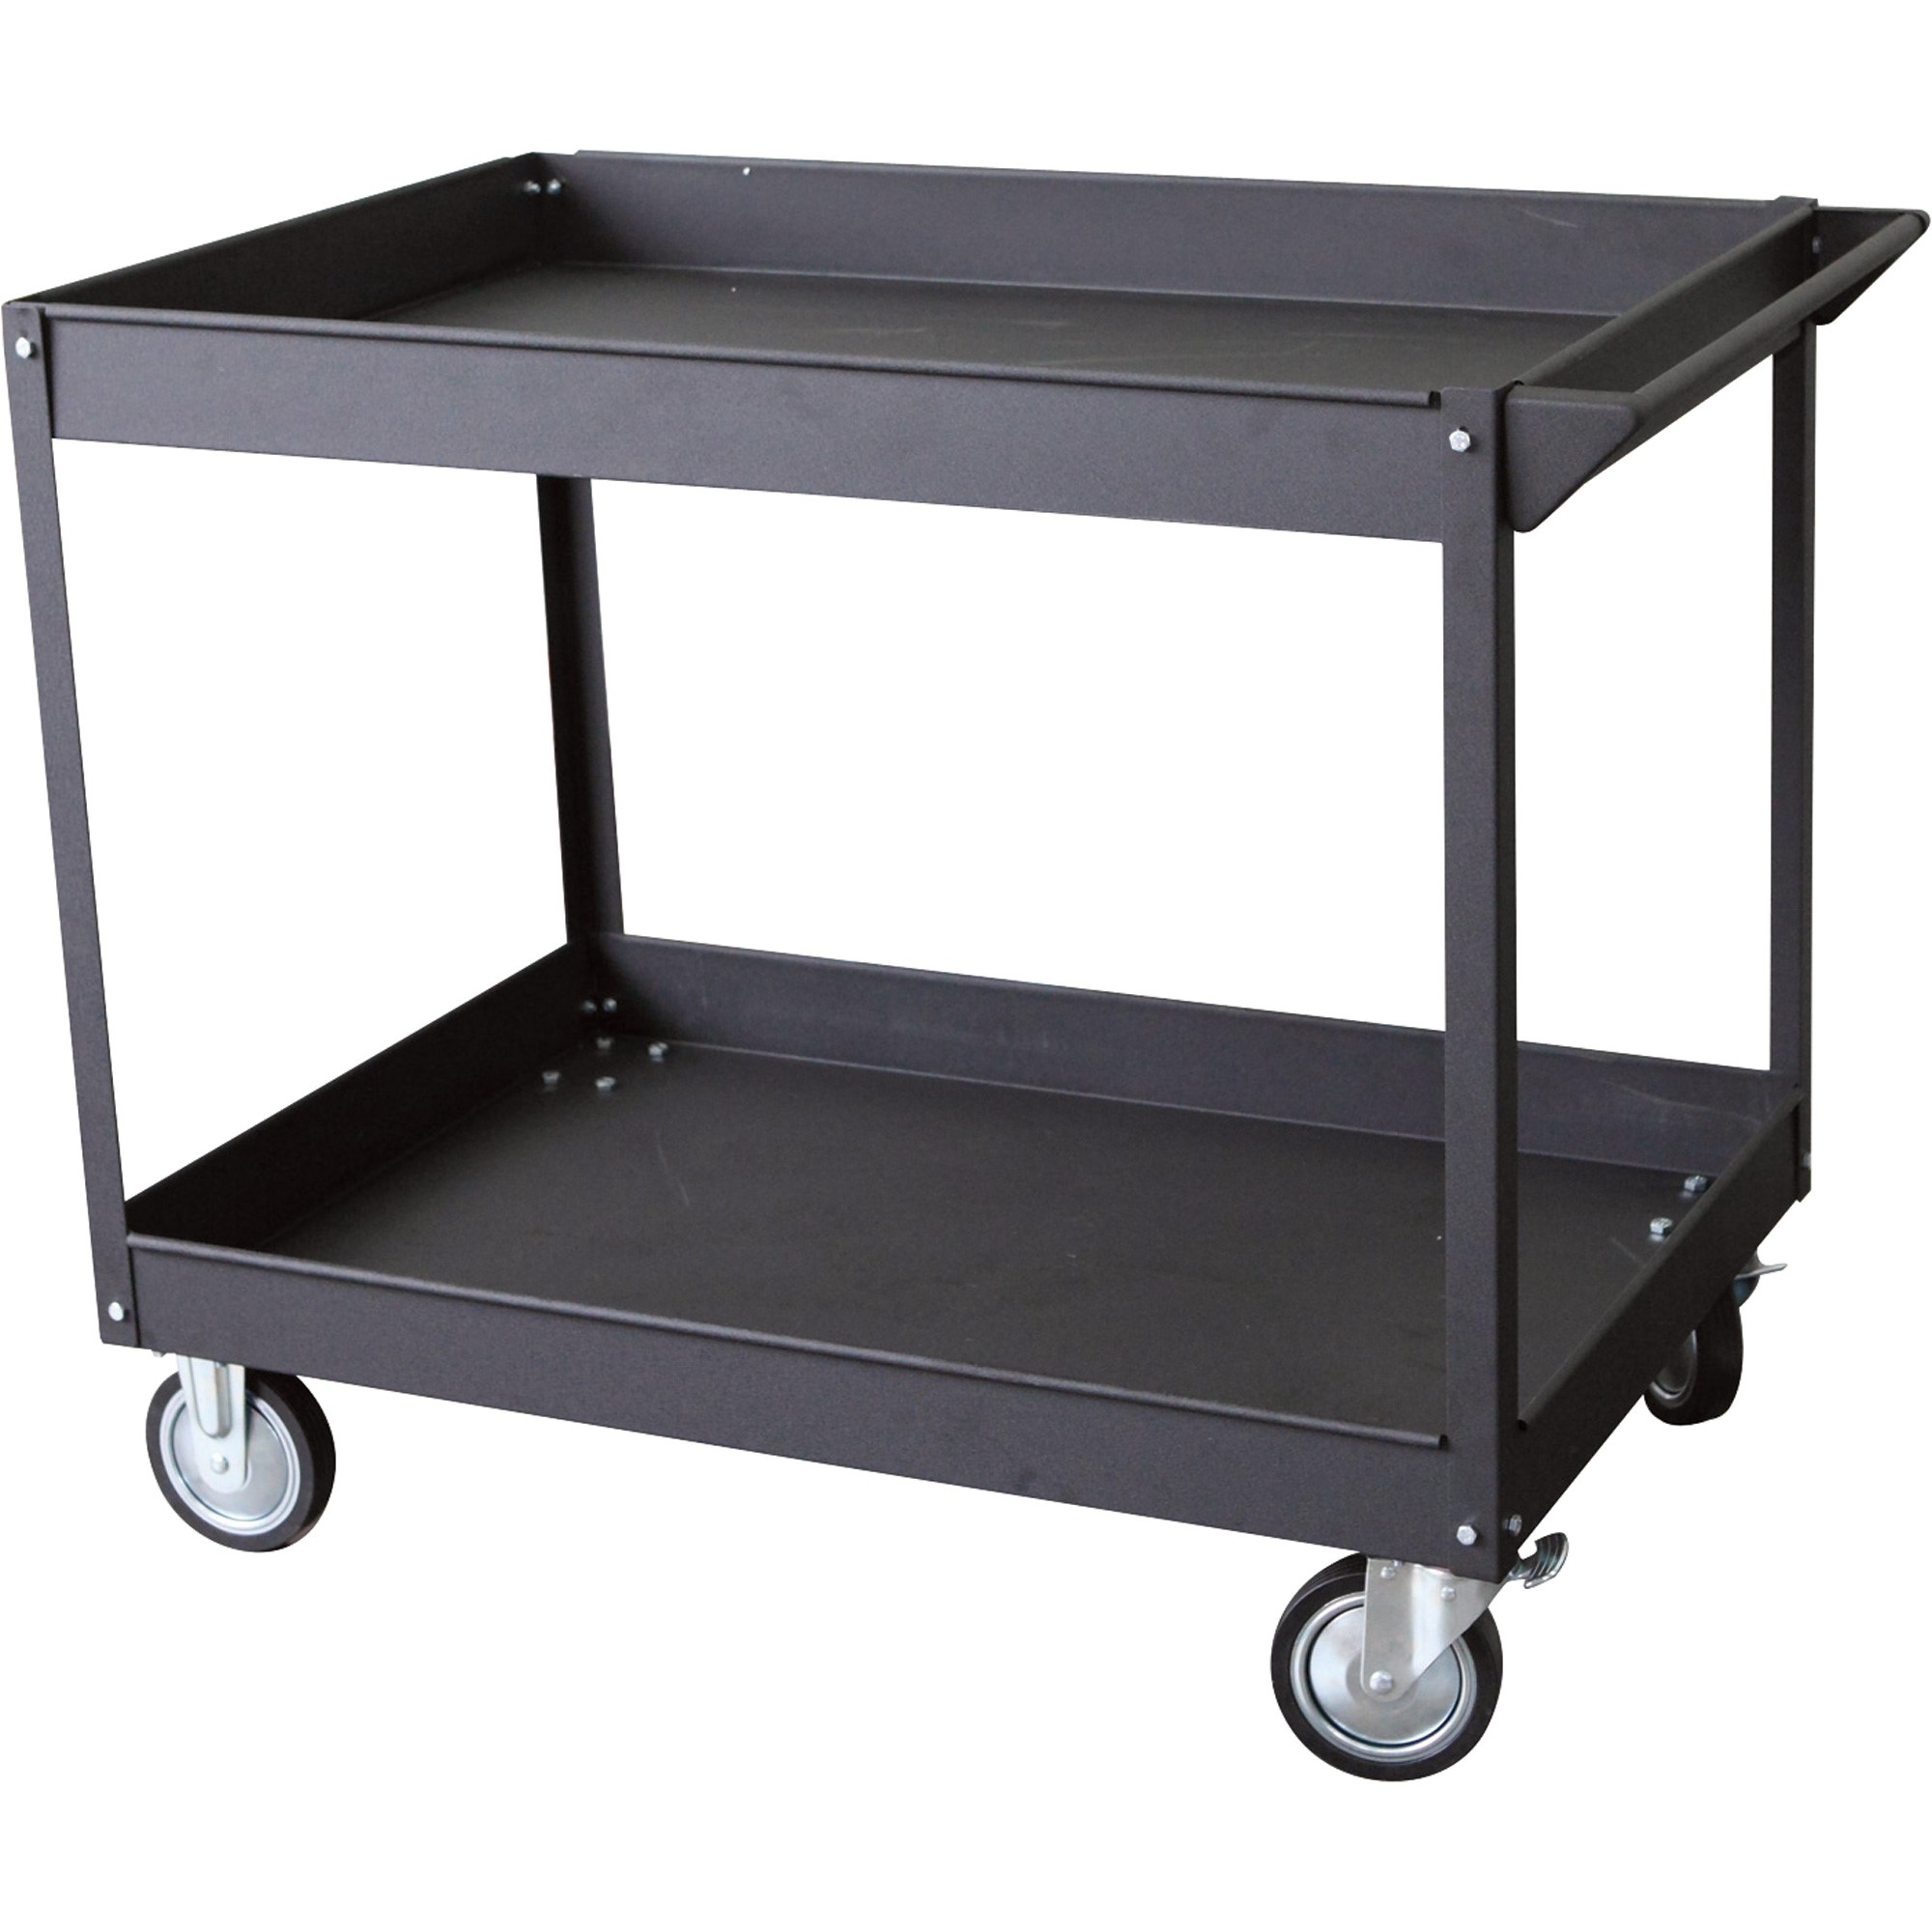 Miscellaneous Office Furniture Solutions Inc